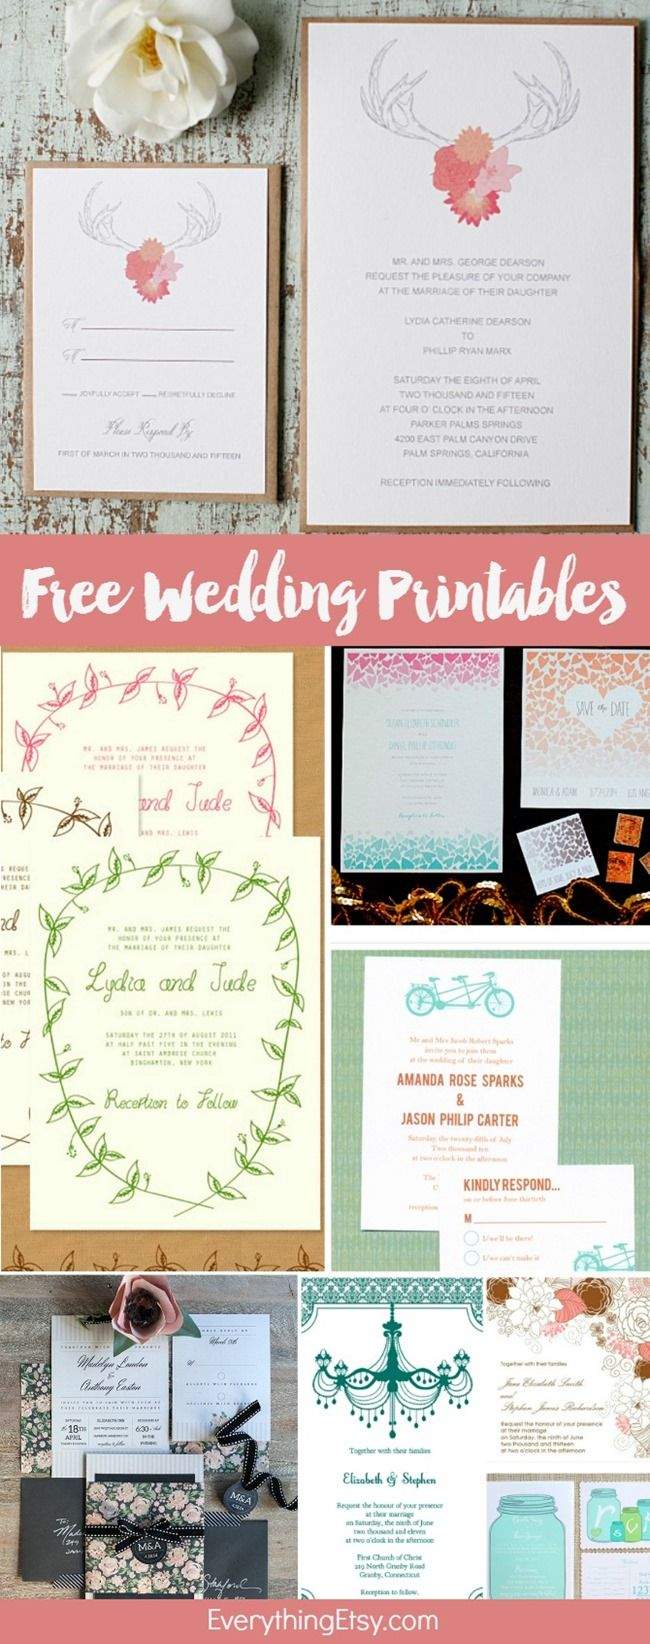 Free Wedding Printablesu2013DIY Invitations 11 best Free